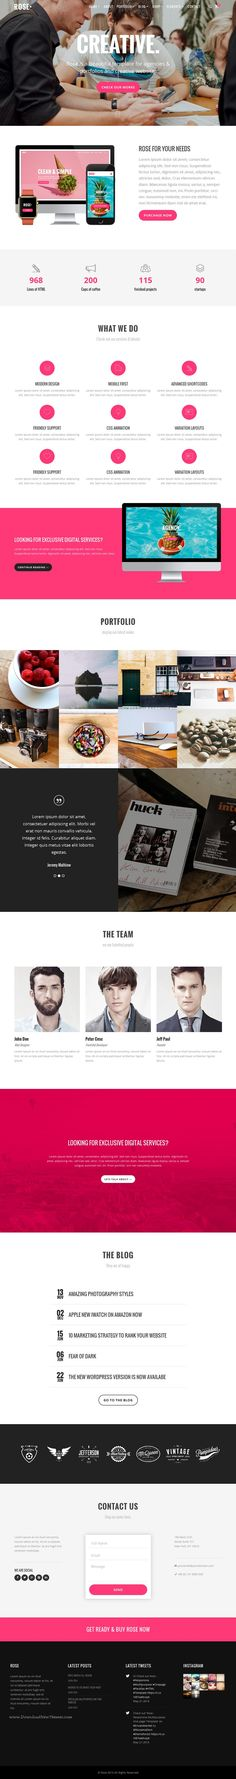 ROSE is a Modern, Responsive multipurpose Onepage HTML Bootstrap template, perfect for Creative, Business, Photography, Agency or landing page website.